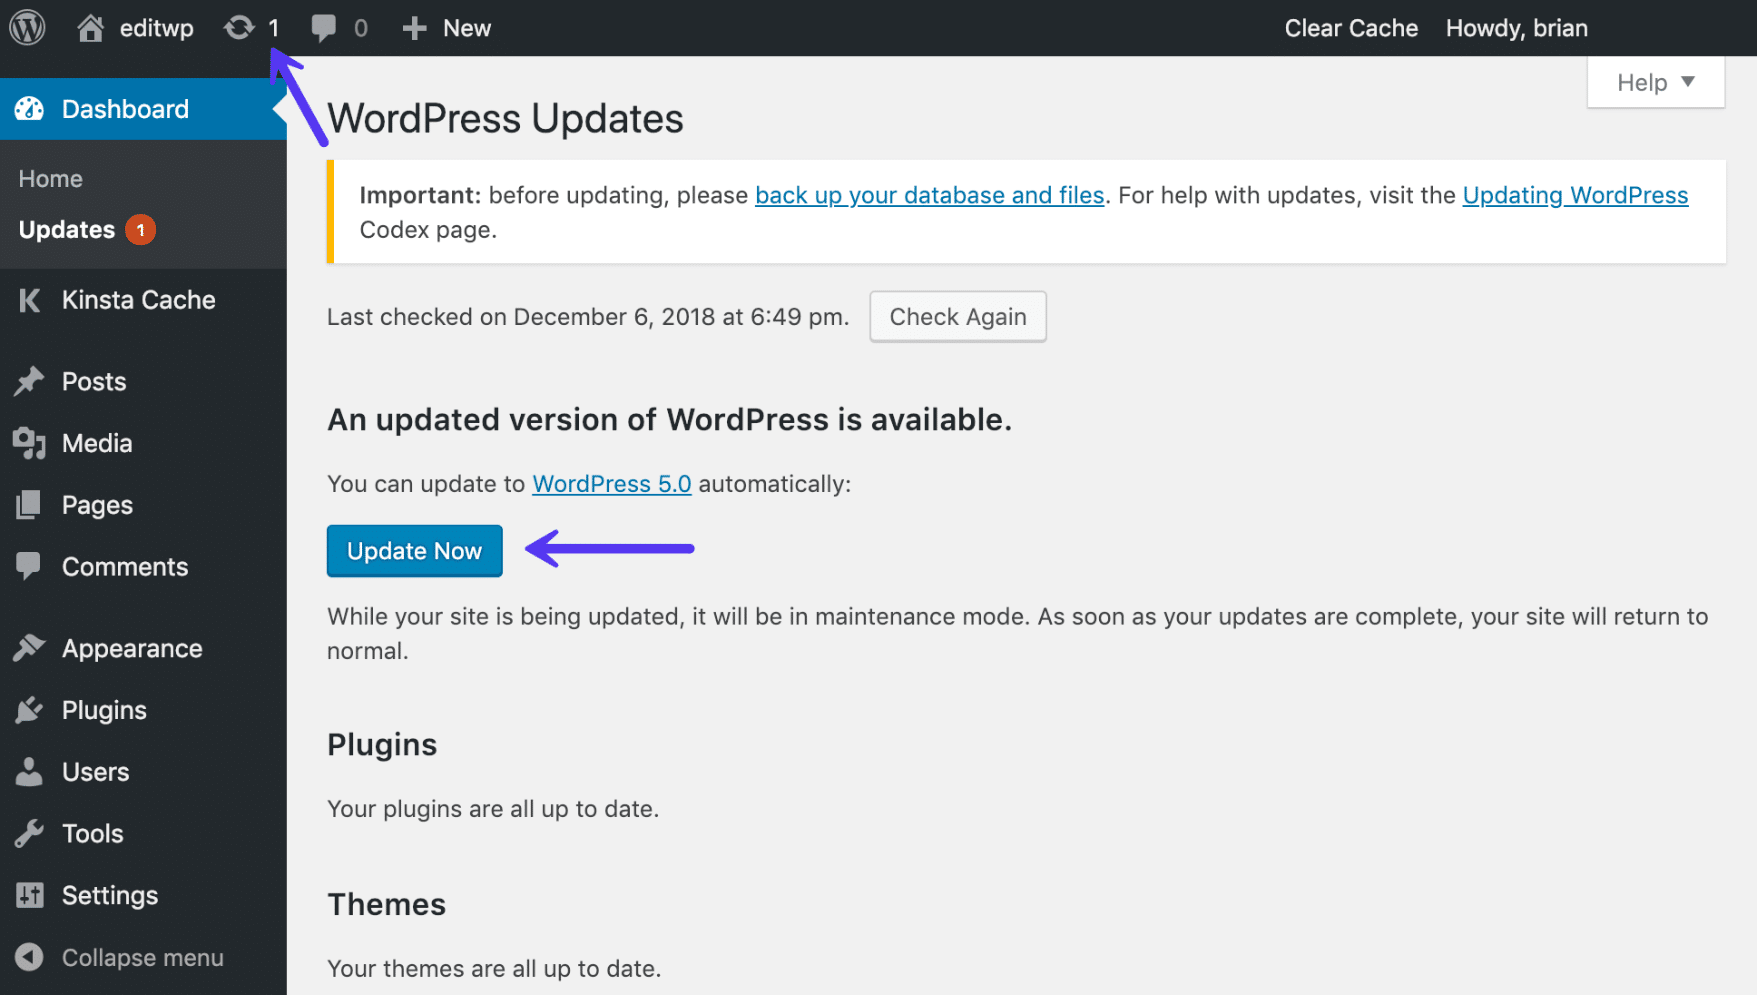 Update to WordPress 5.0